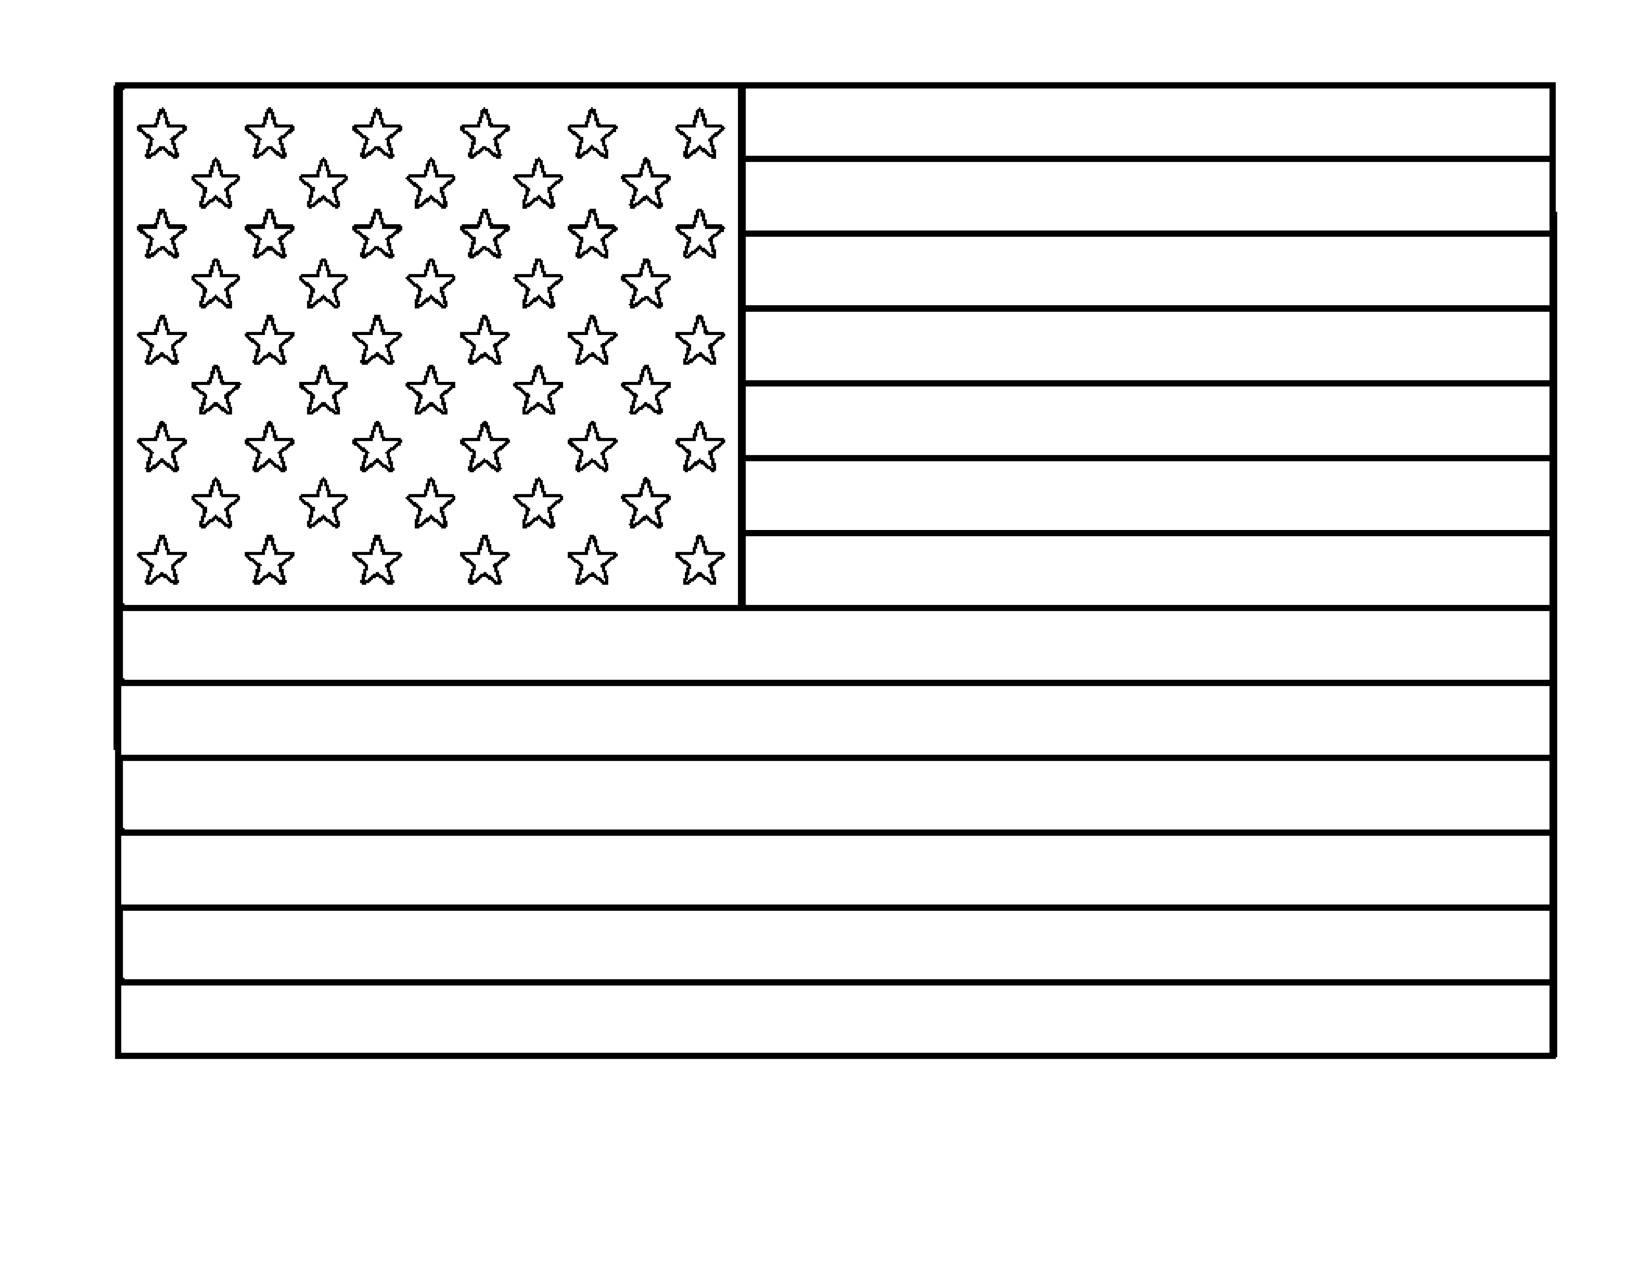 Free clipart american flag black and white png freeuse stock Free American Flag Clip Art Black And White, Download Free ... png freeuse stock